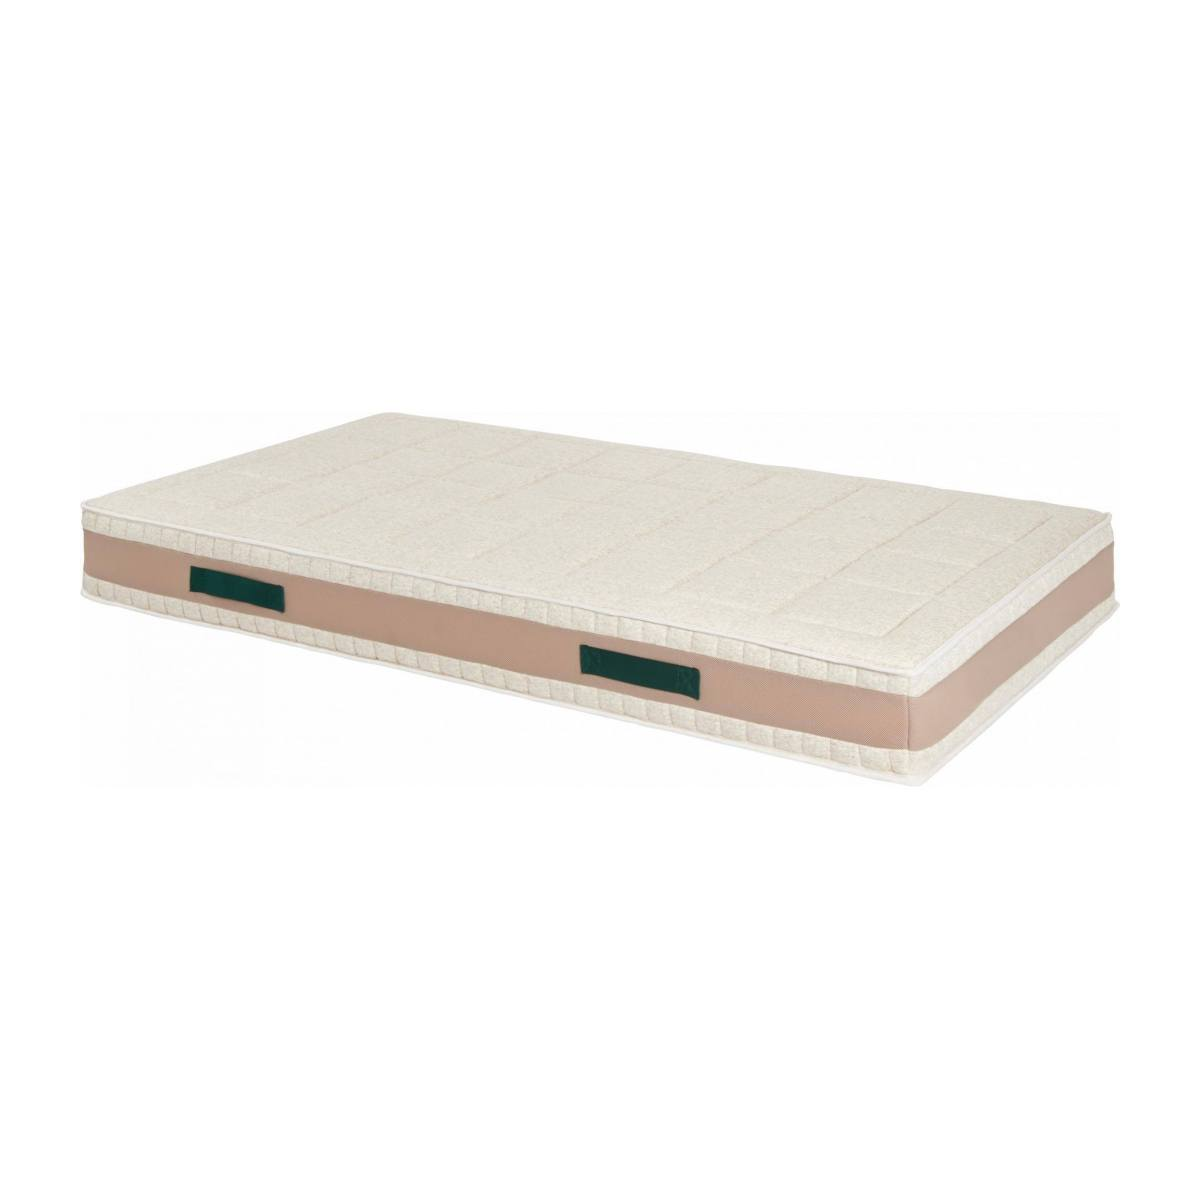 Latex mattress , width 23 cm, 90x200cm - firm support n°1